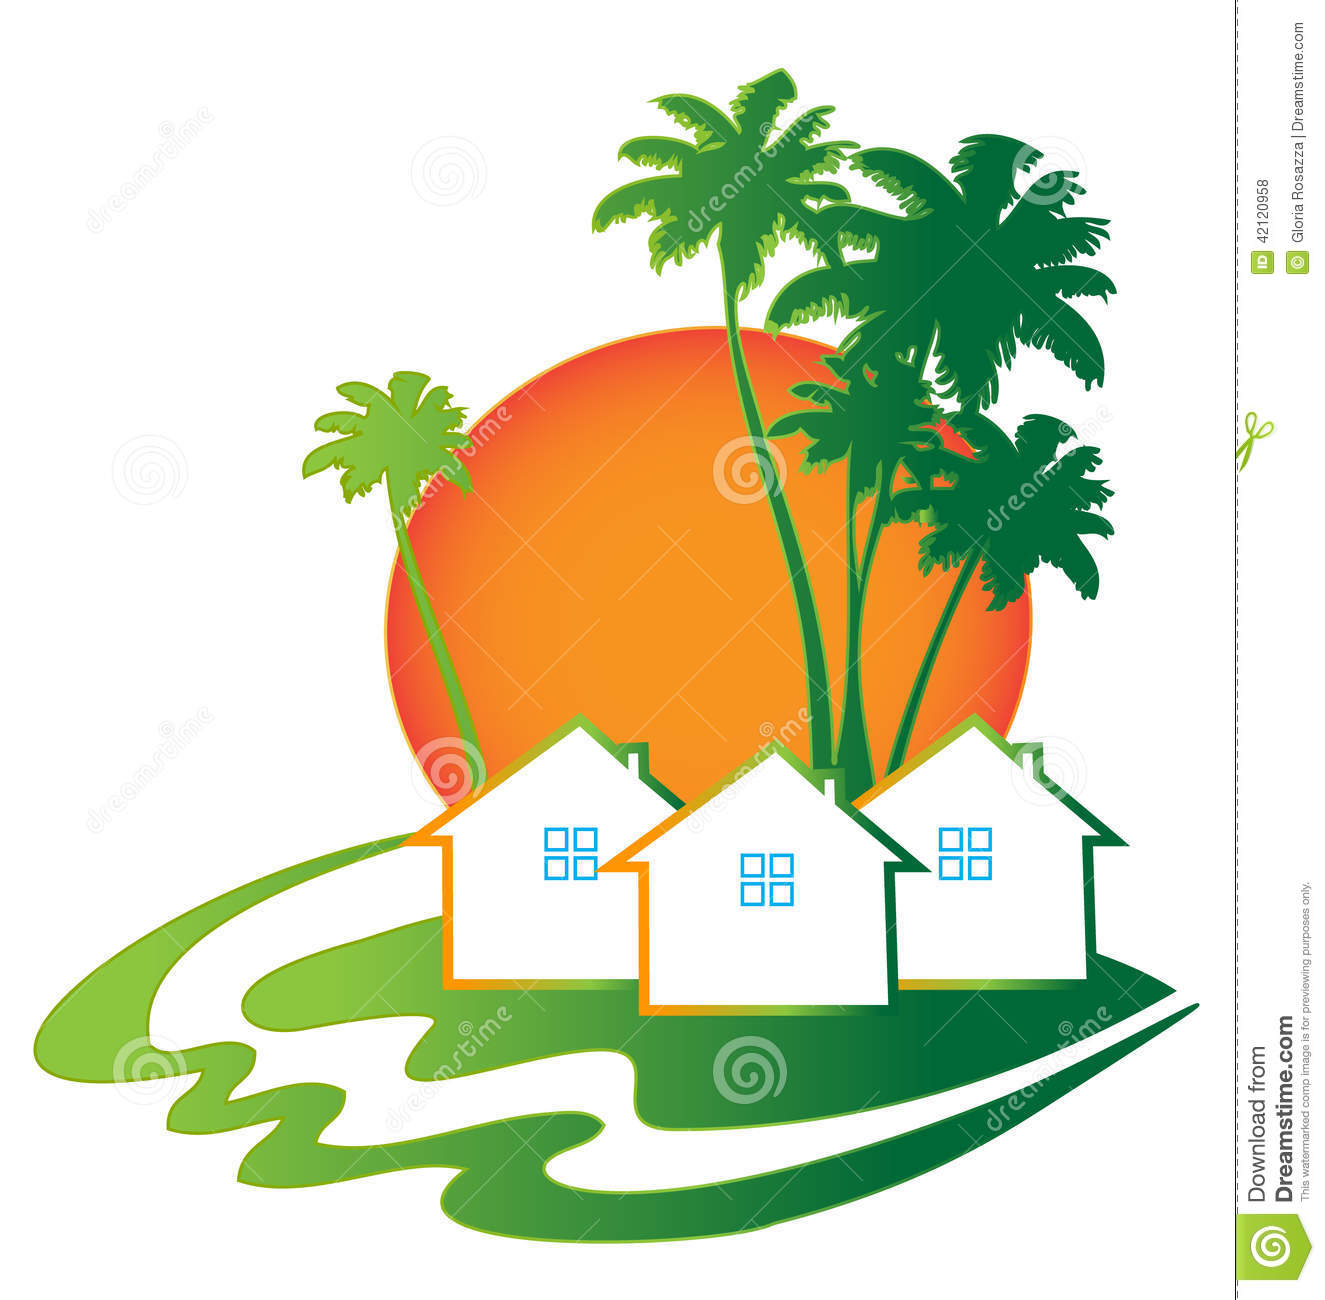 Houses Real Estate Business Card Logo Stock Vector - Image: 42120958